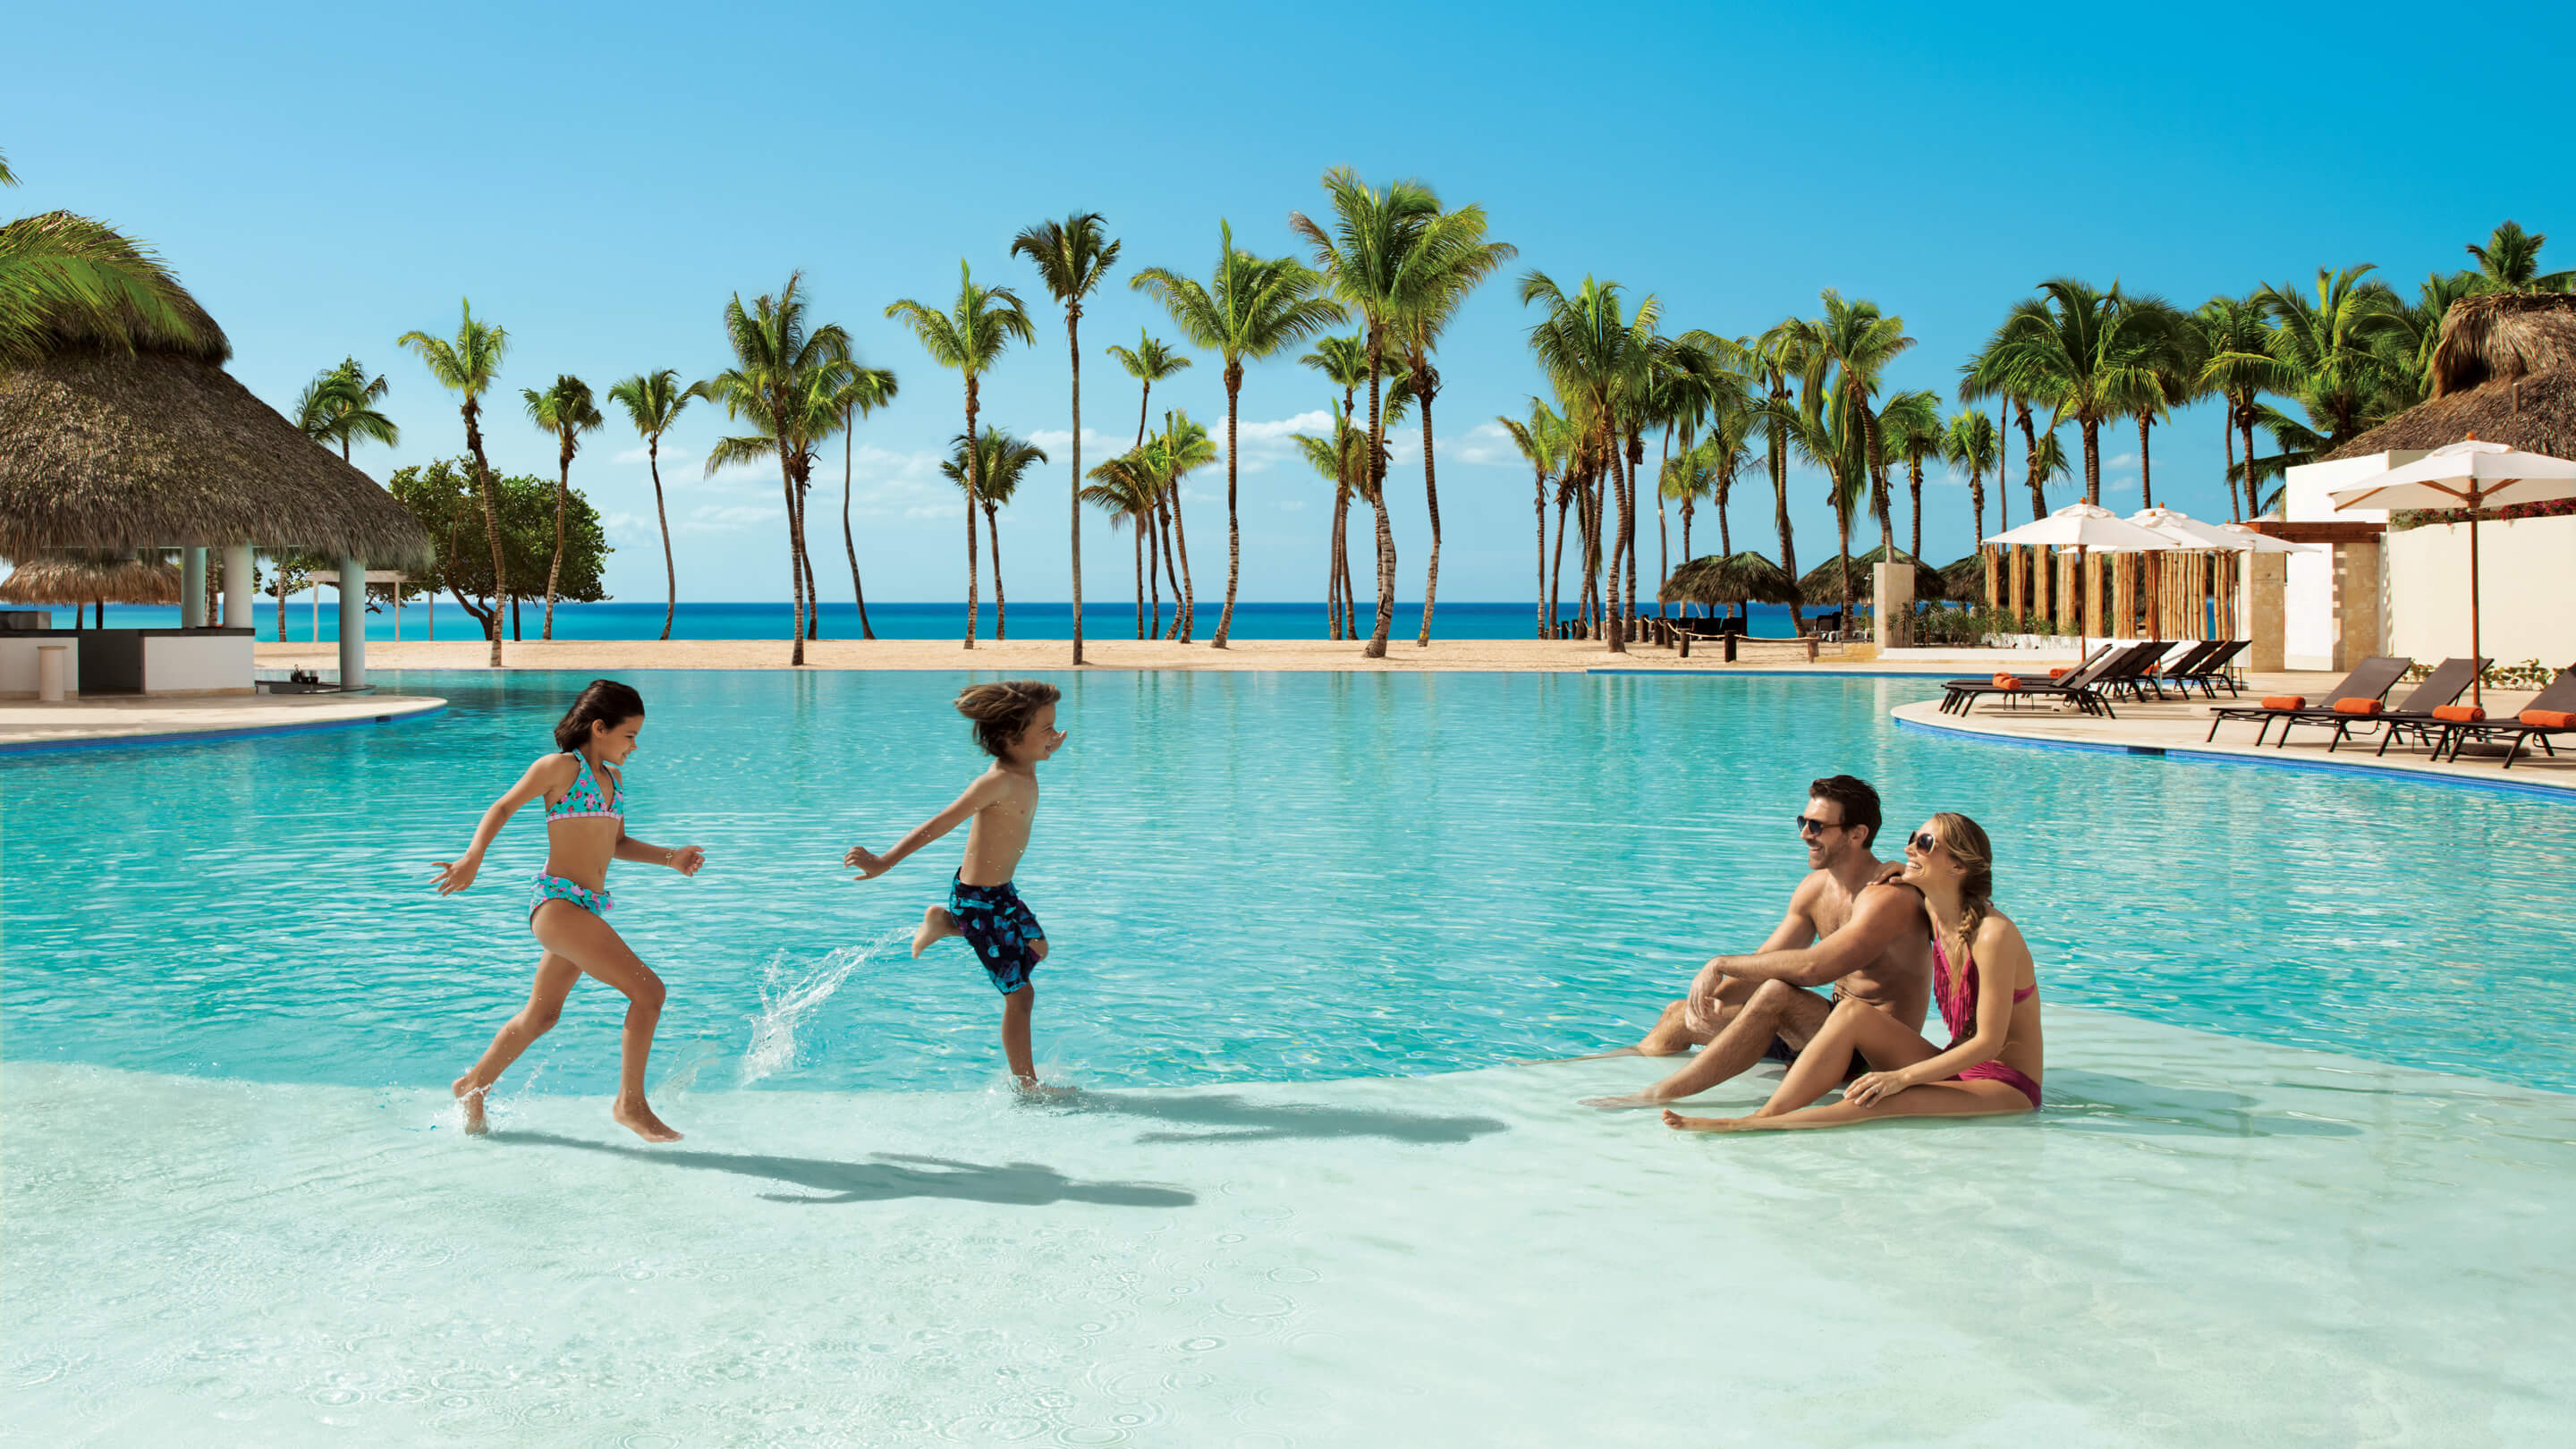 Be family-friendly in every amenity